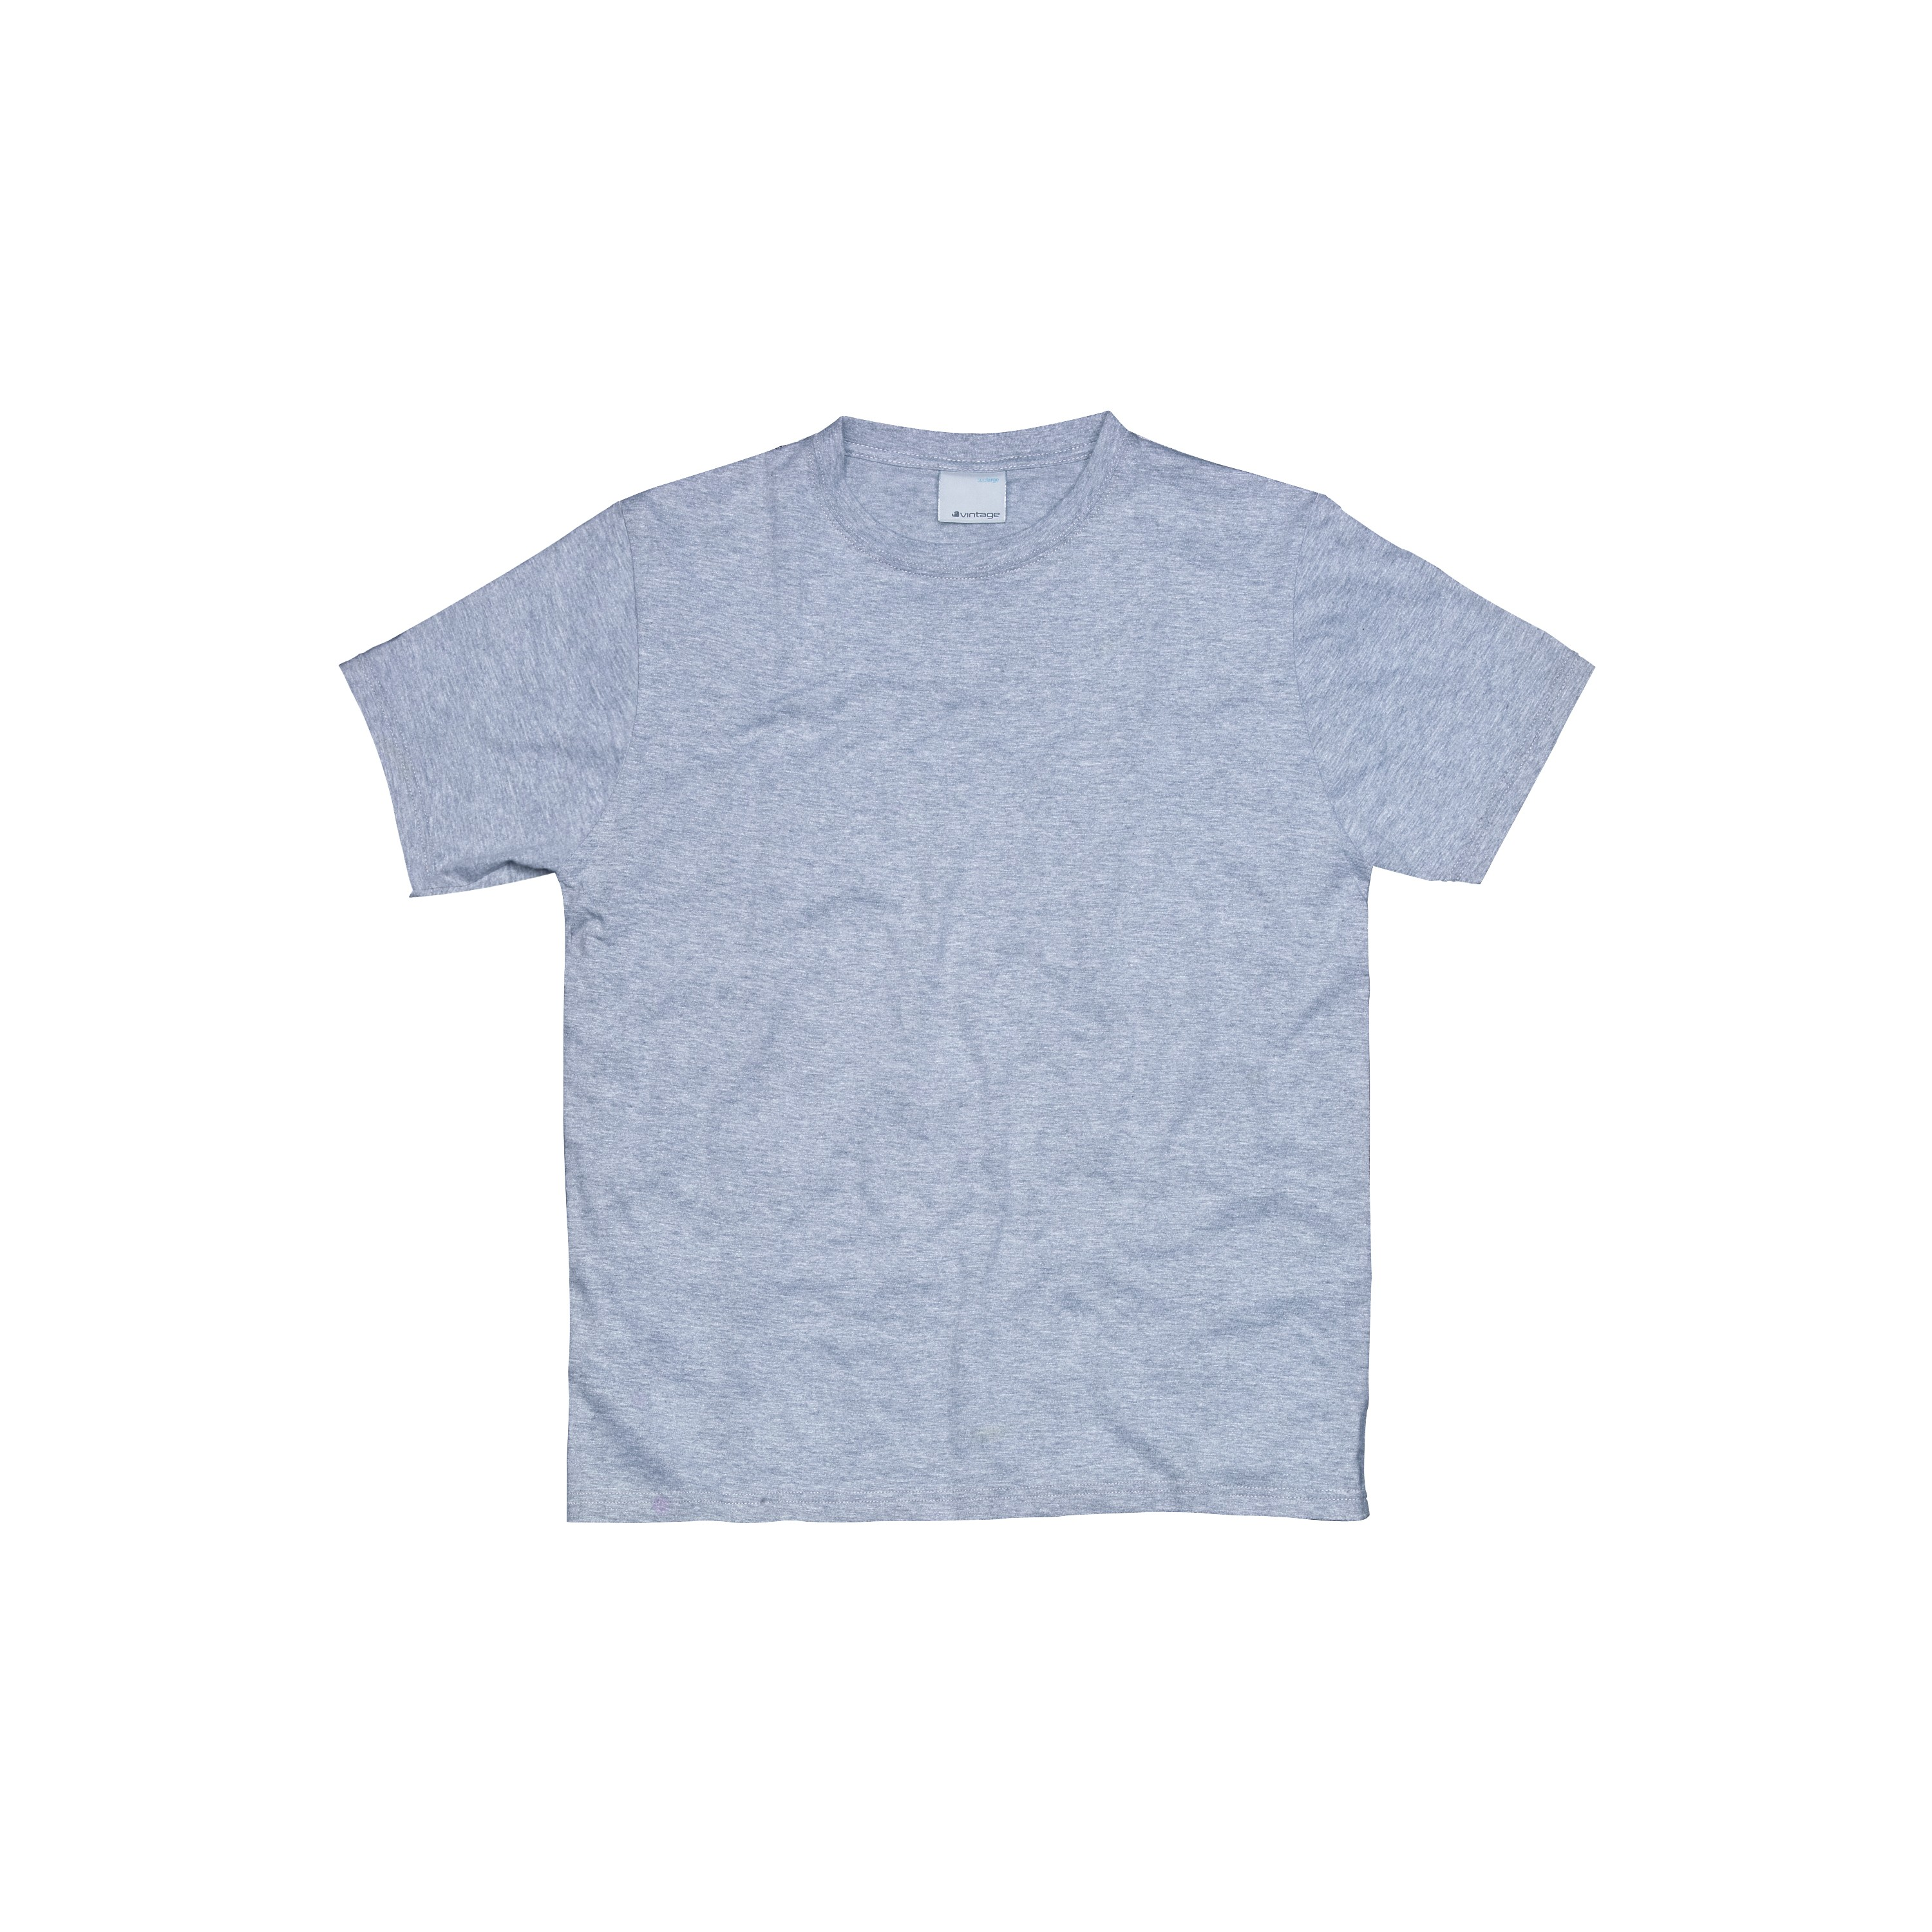 T-Shirt Vintage Industries Marlow gray